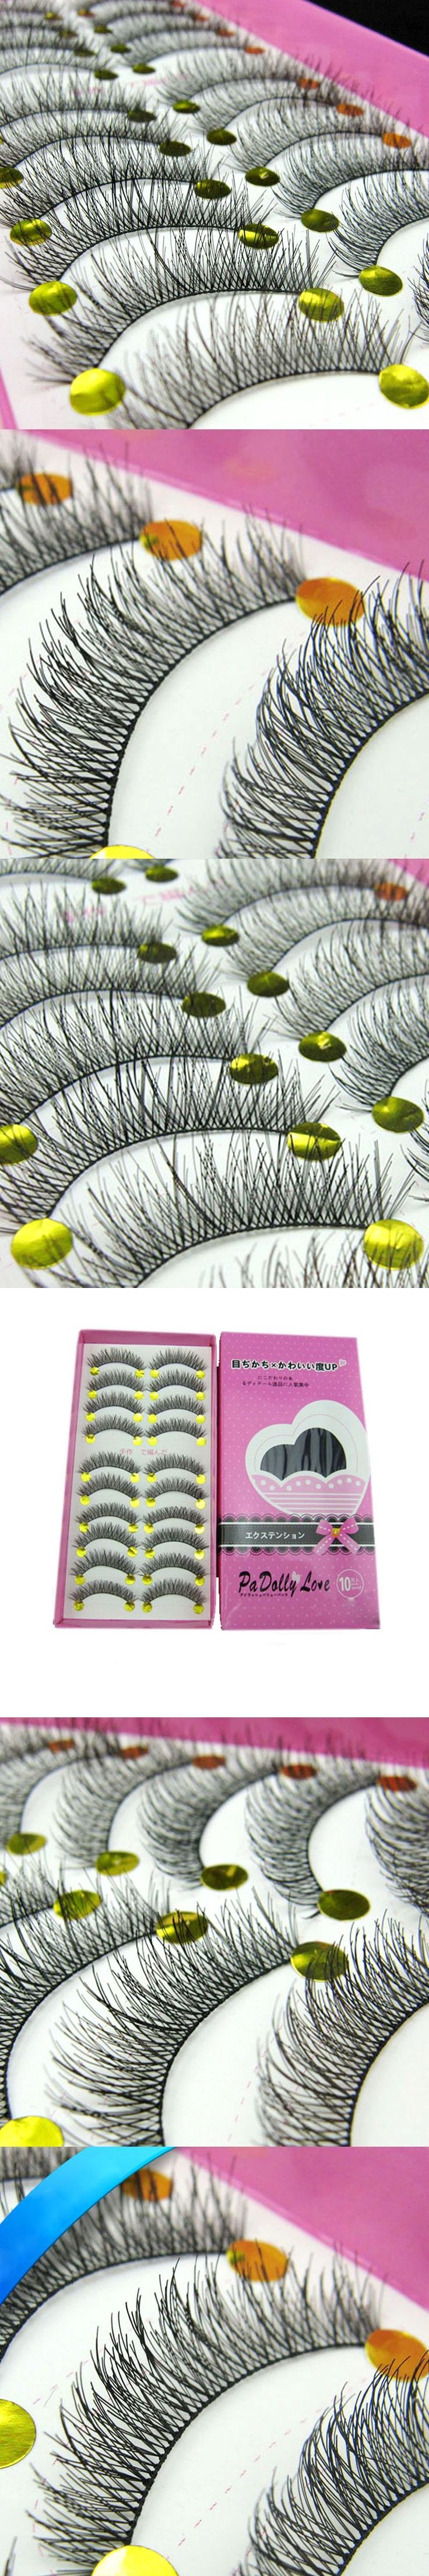 10 Pair Natural False Eyelashes Long Eyelash High Quality Fake Eye Lashes Extension Band Makeup Crisscross False Eyelashes